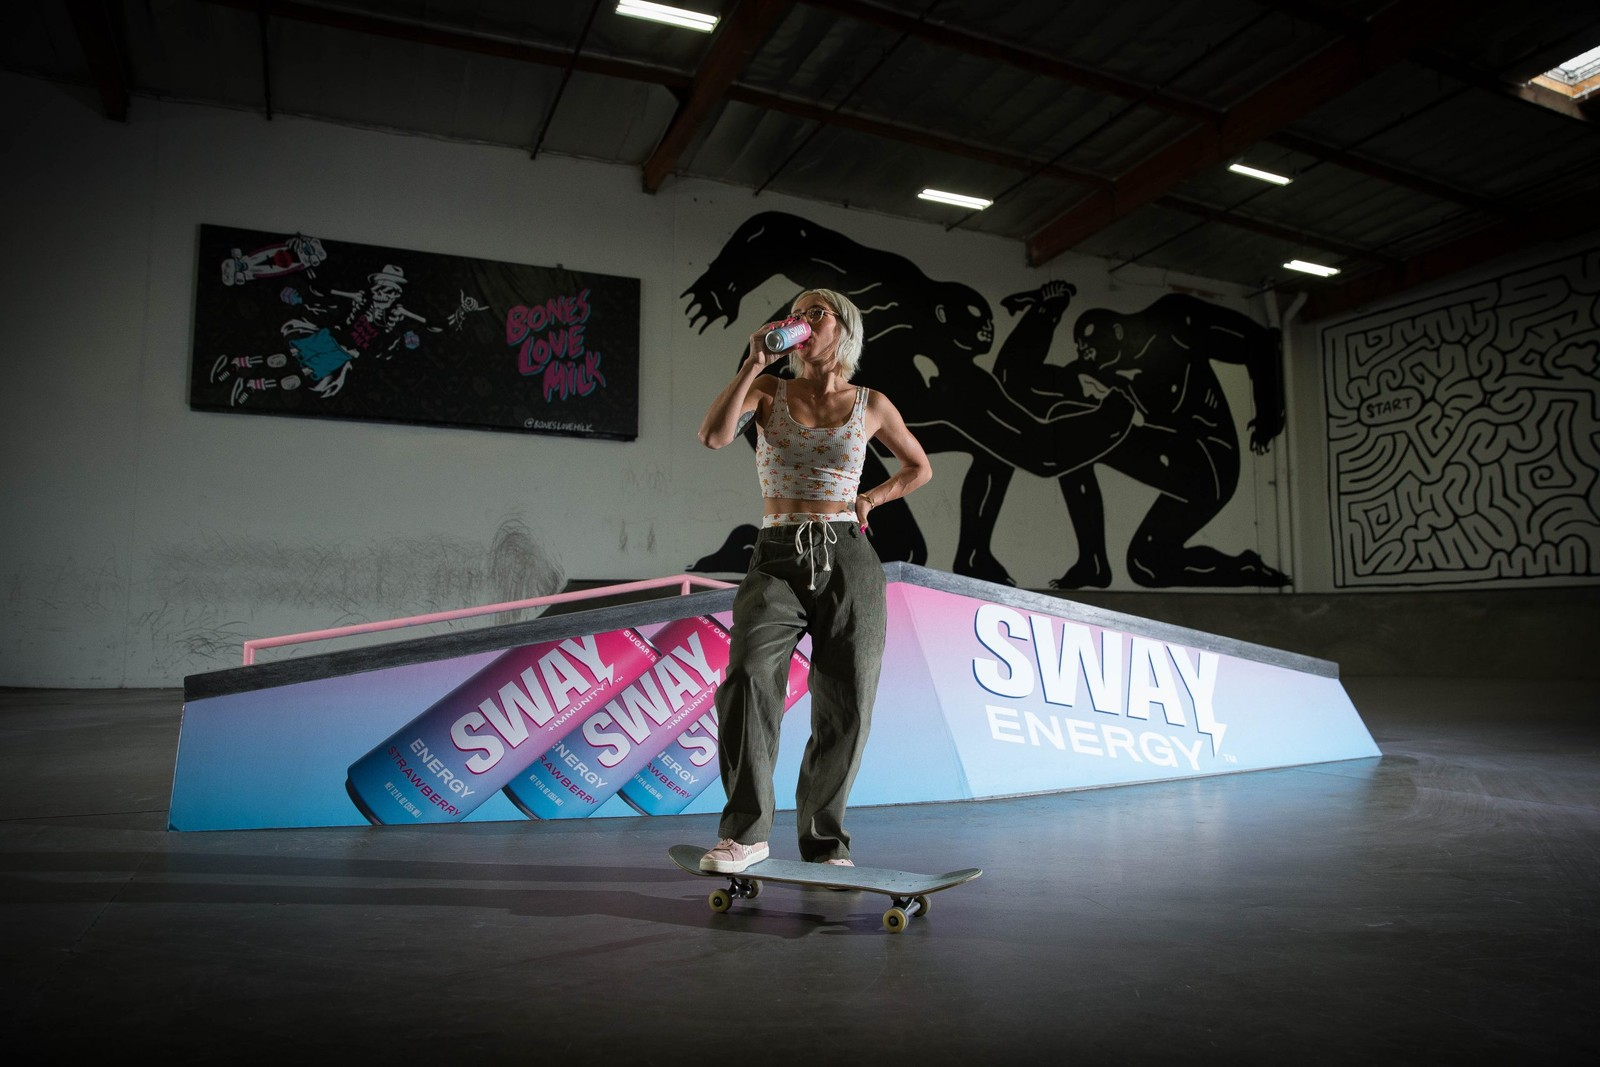 SWAY Energy Drink and The Berrics Announce New Partnership